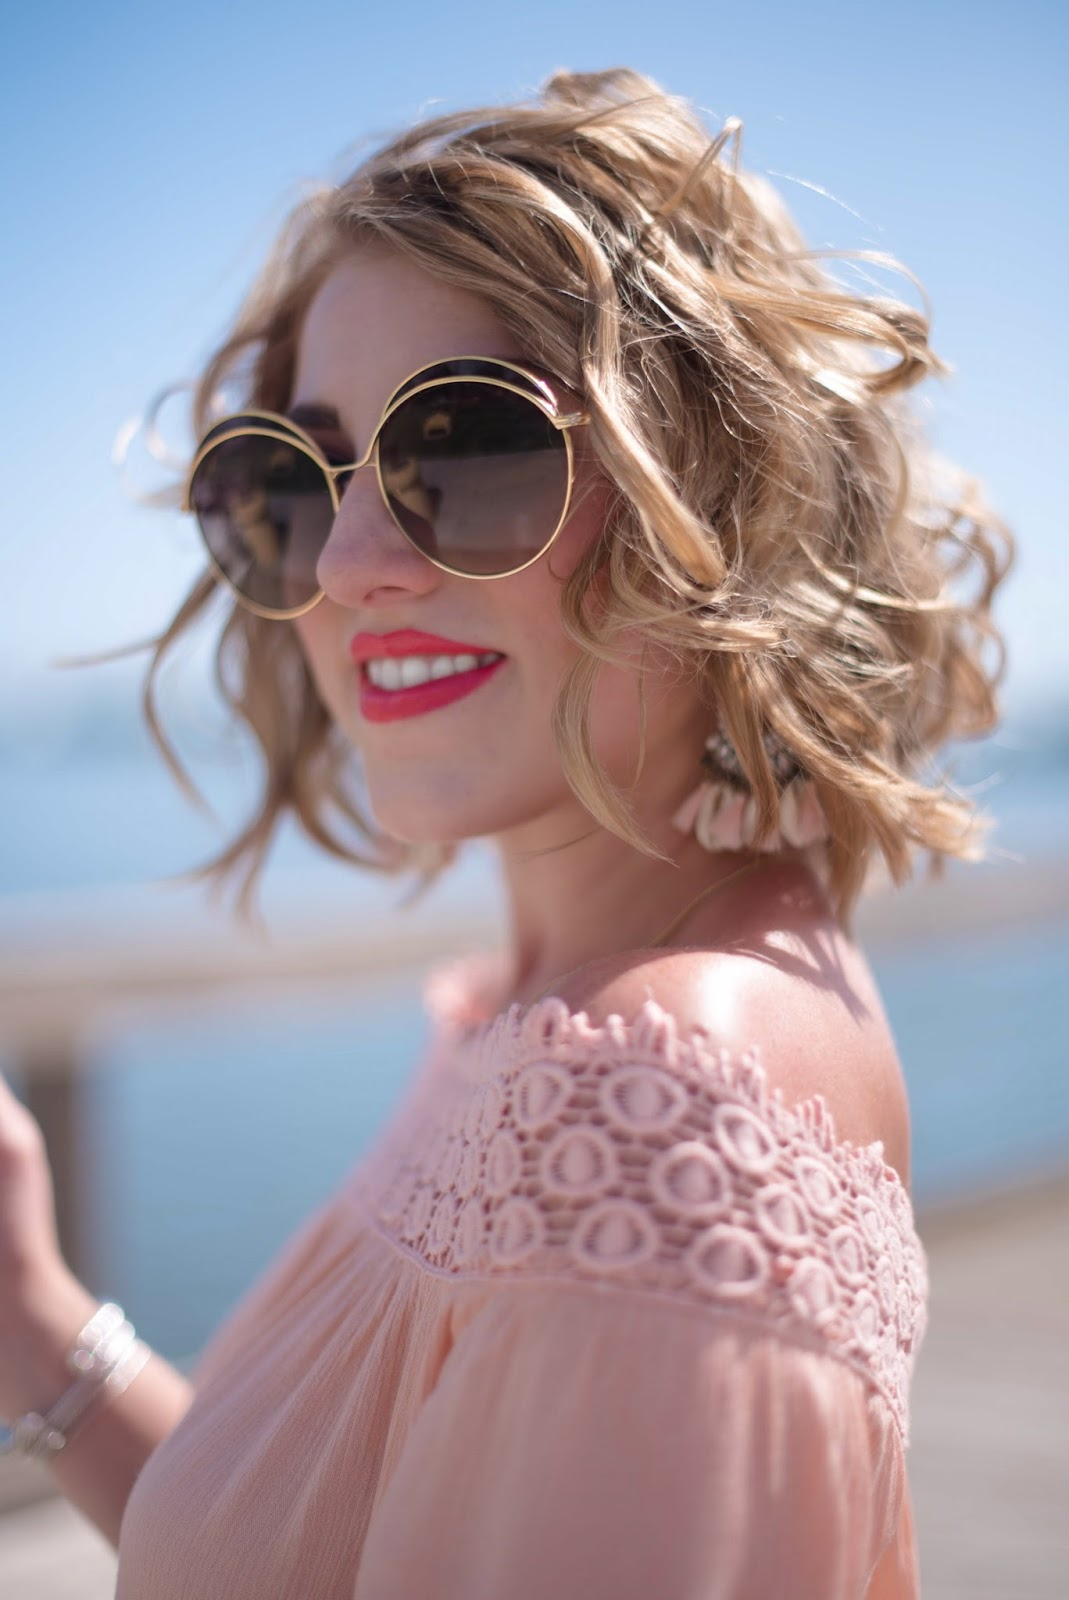 Sonix Oasis Round Sunglasses - Click through to see more on Something Delightful Blog!